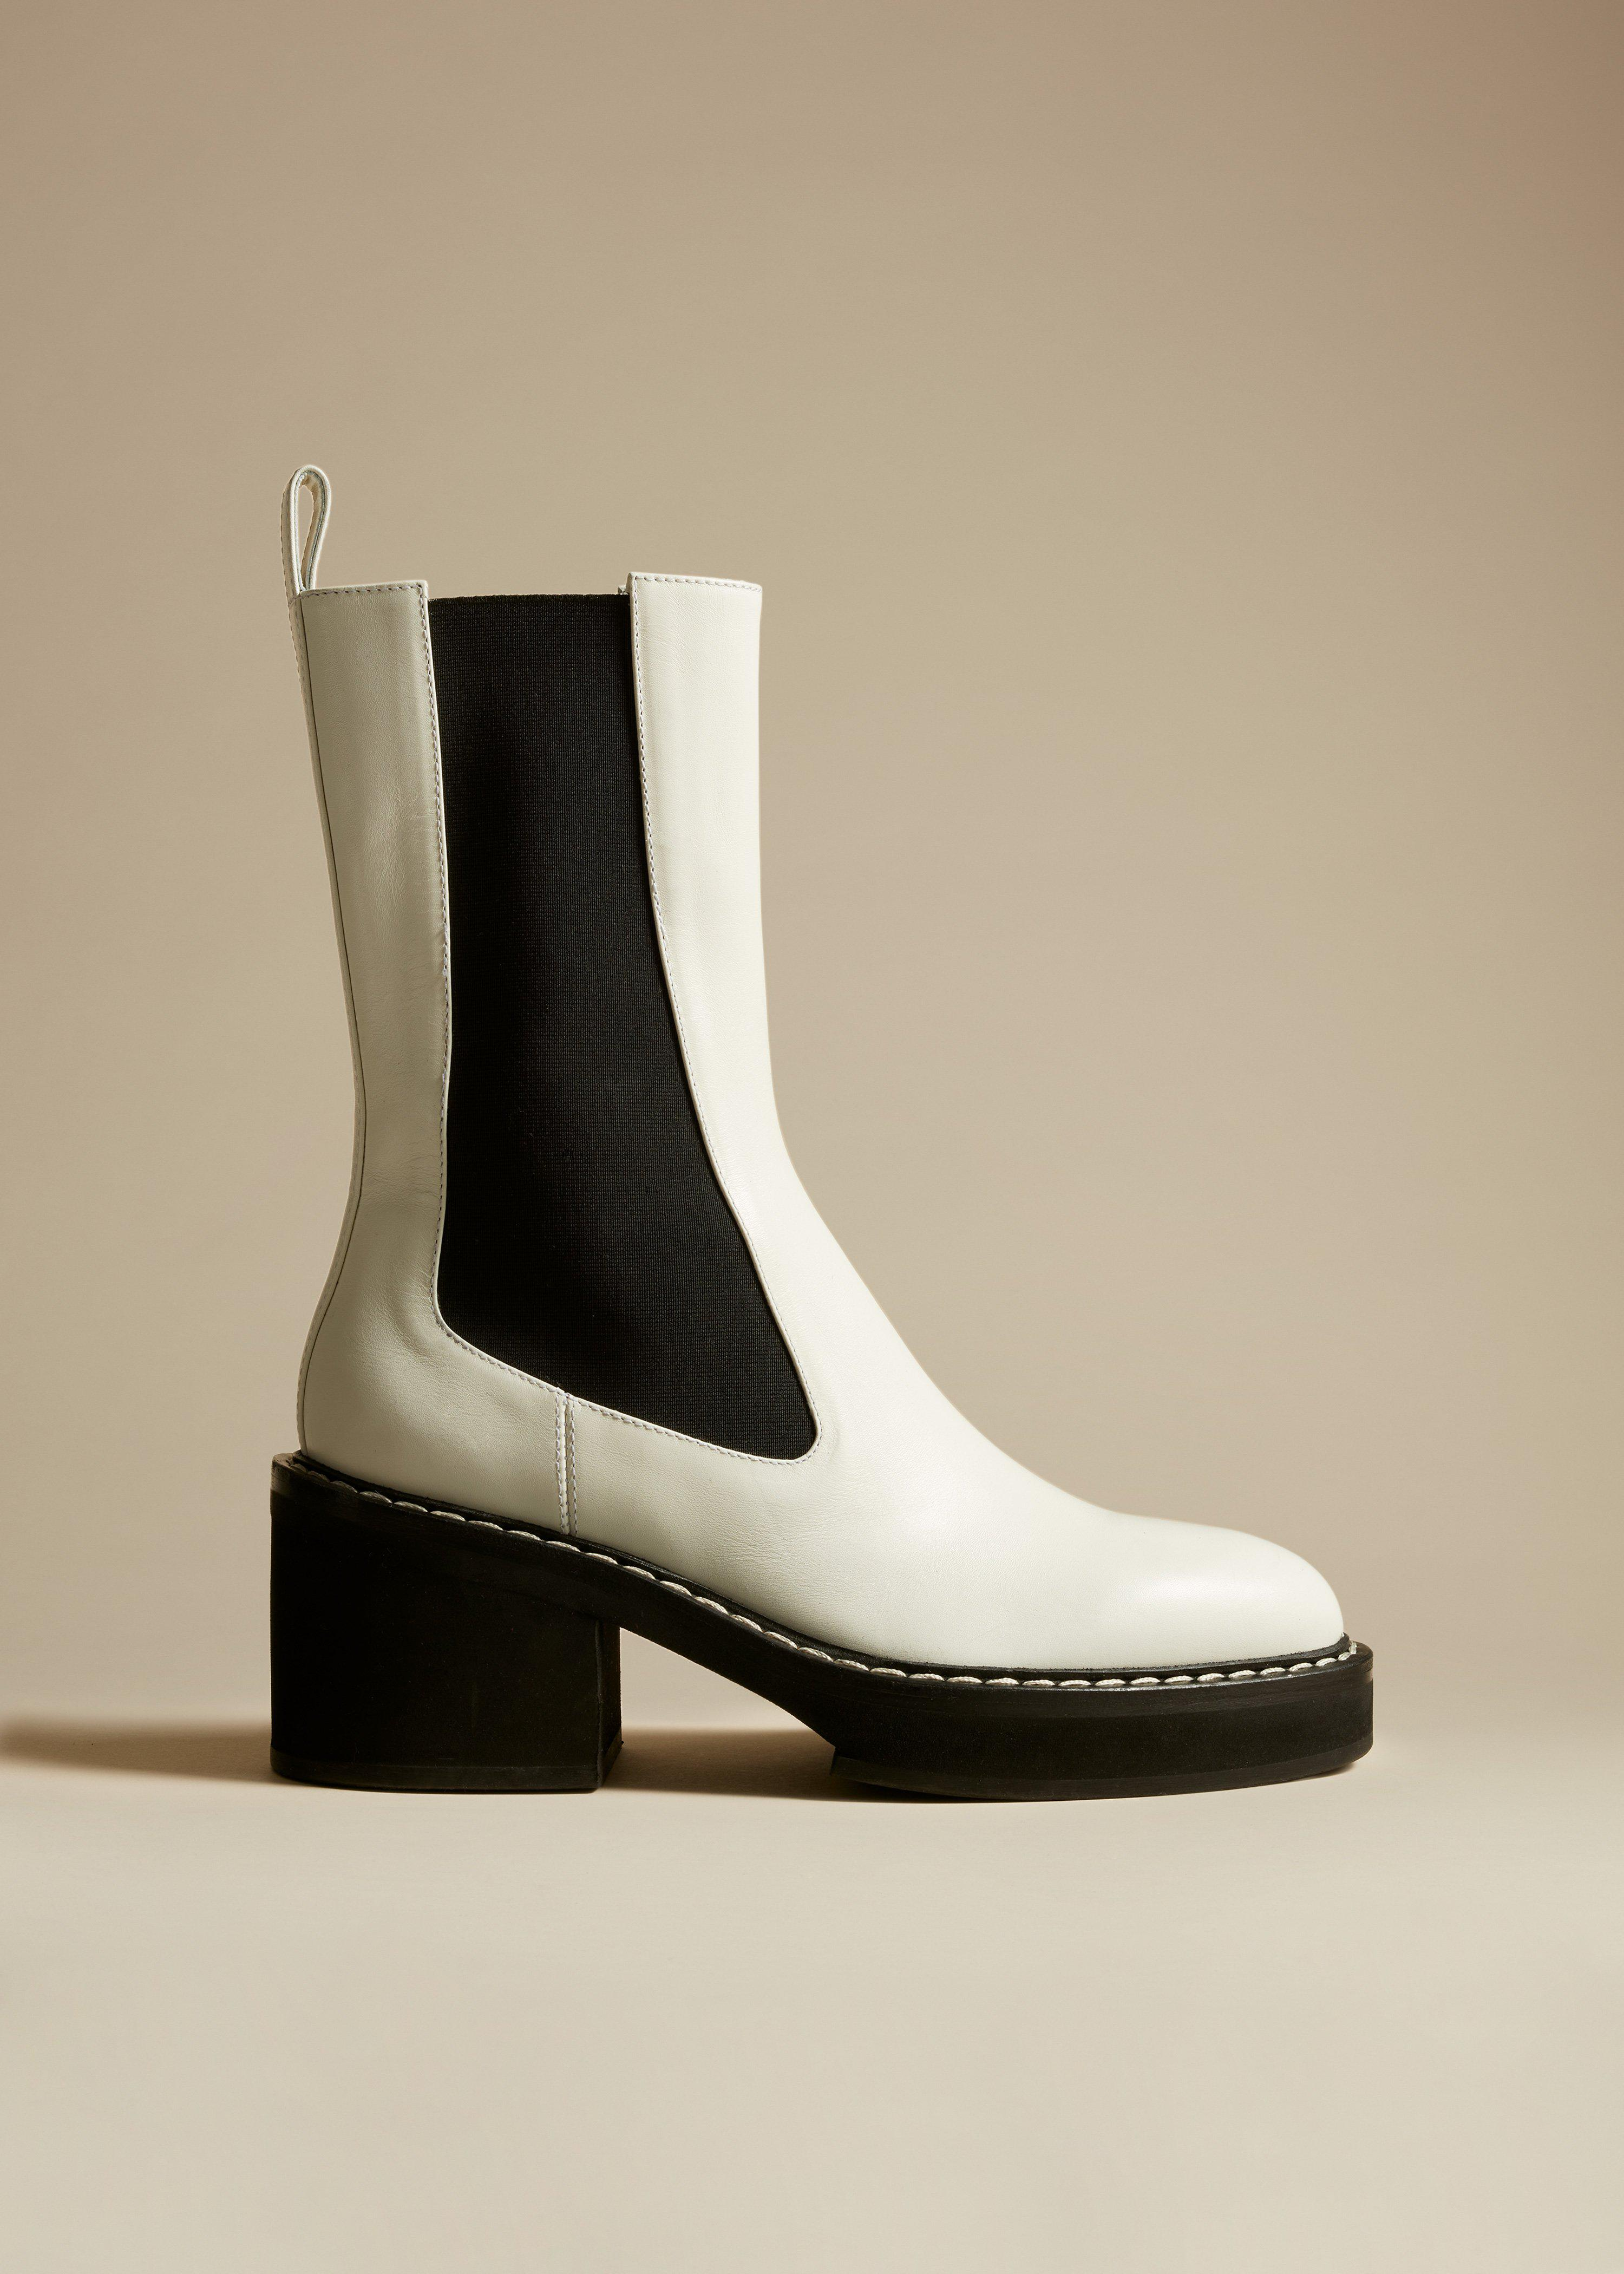 The Calgary Boot in White Leather